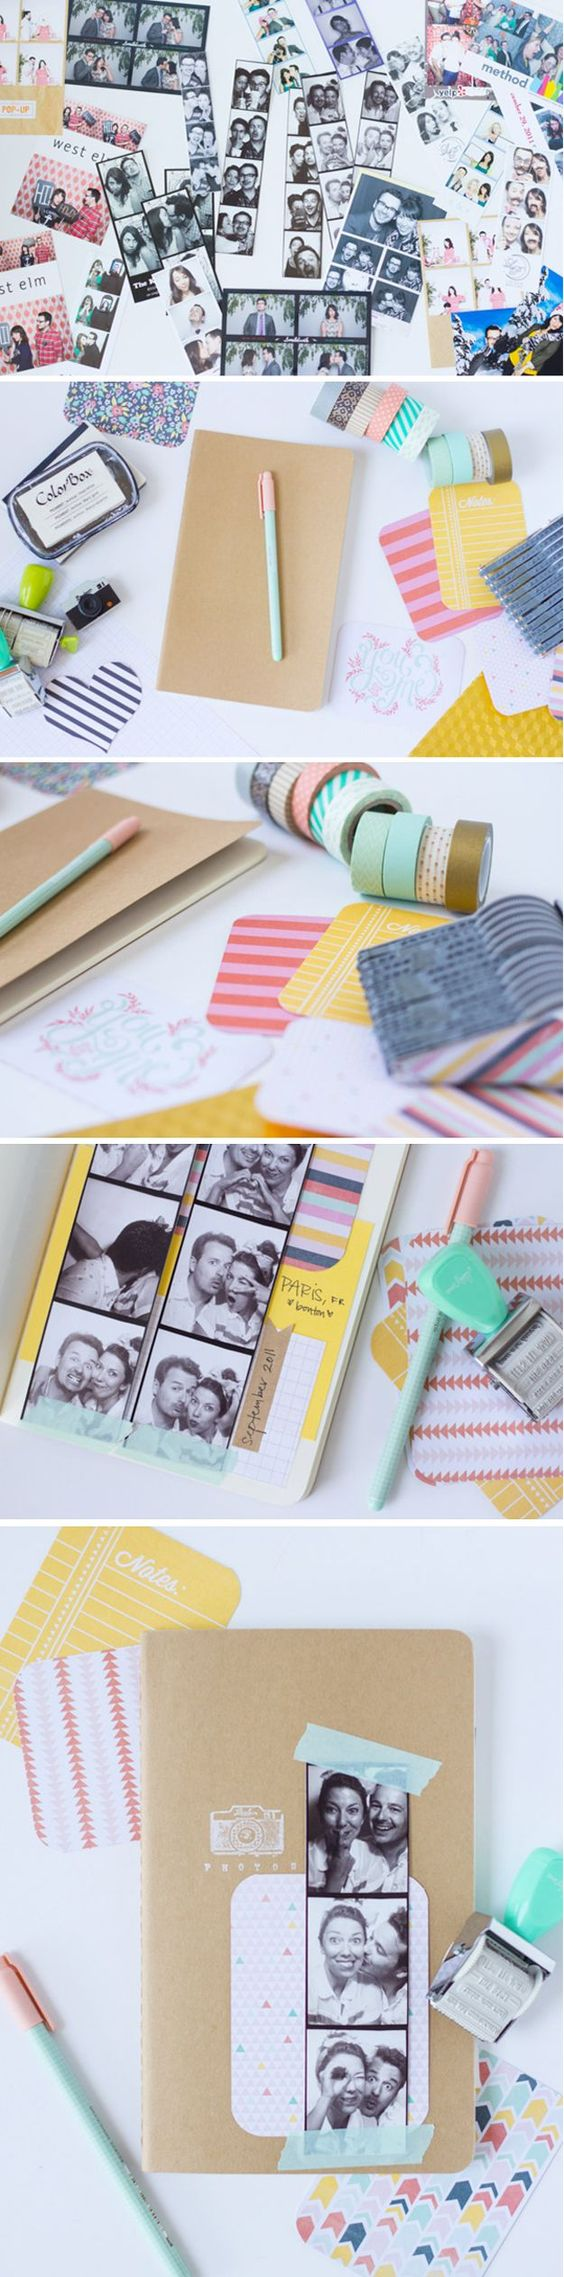 100 Washi Tape Ideas To Style And Personalize Your Items Creative